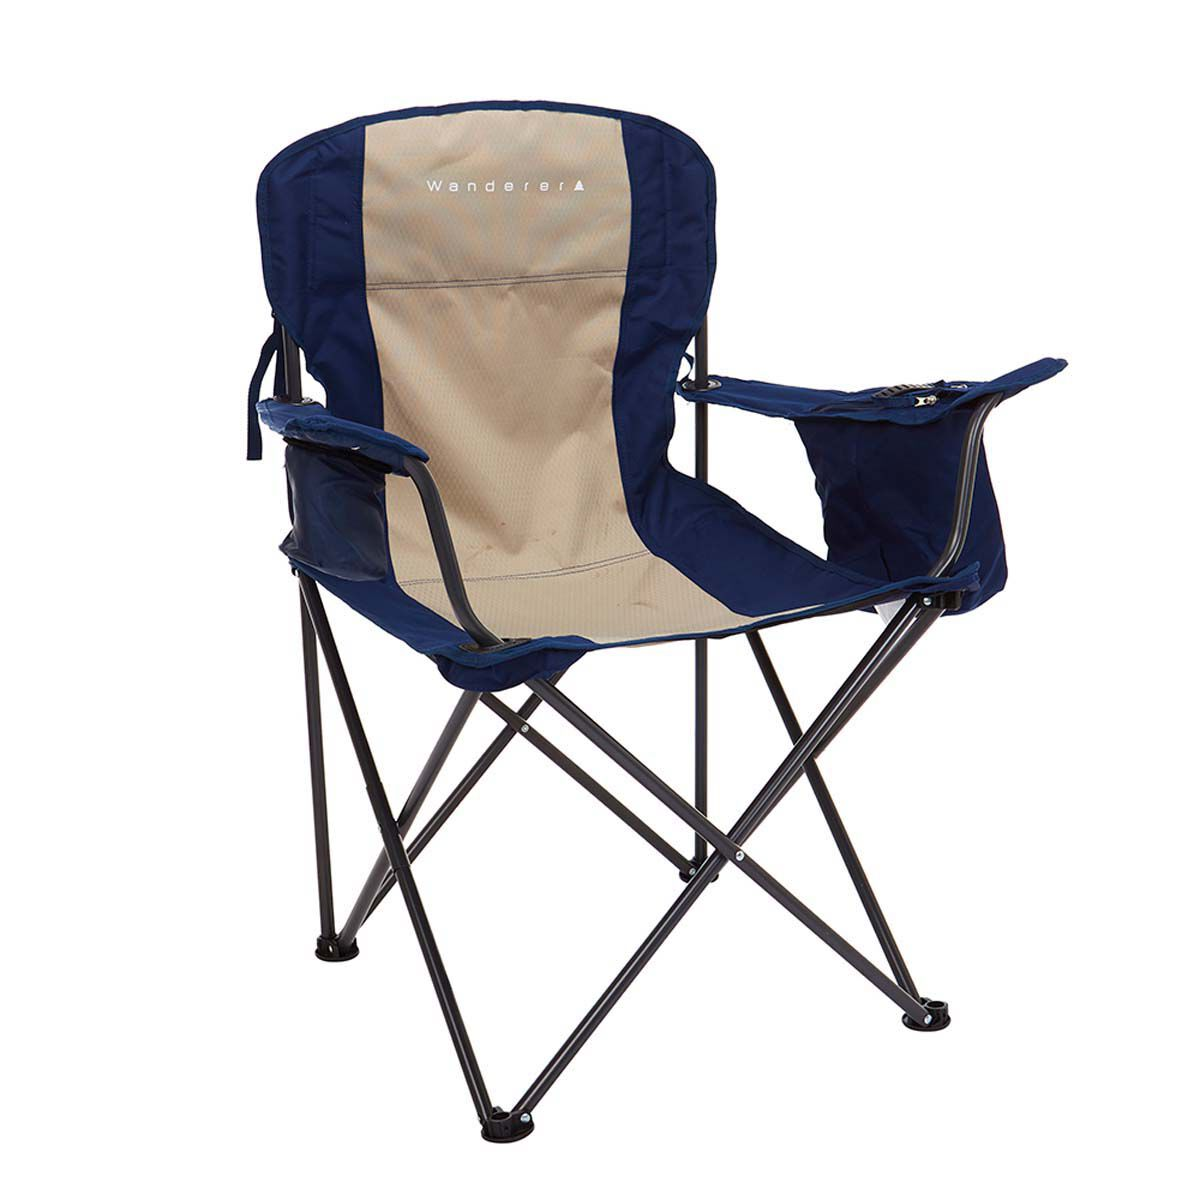 fishing chair spare parts kids play chairs beach buy online bcf australia standard cooler arm hi res